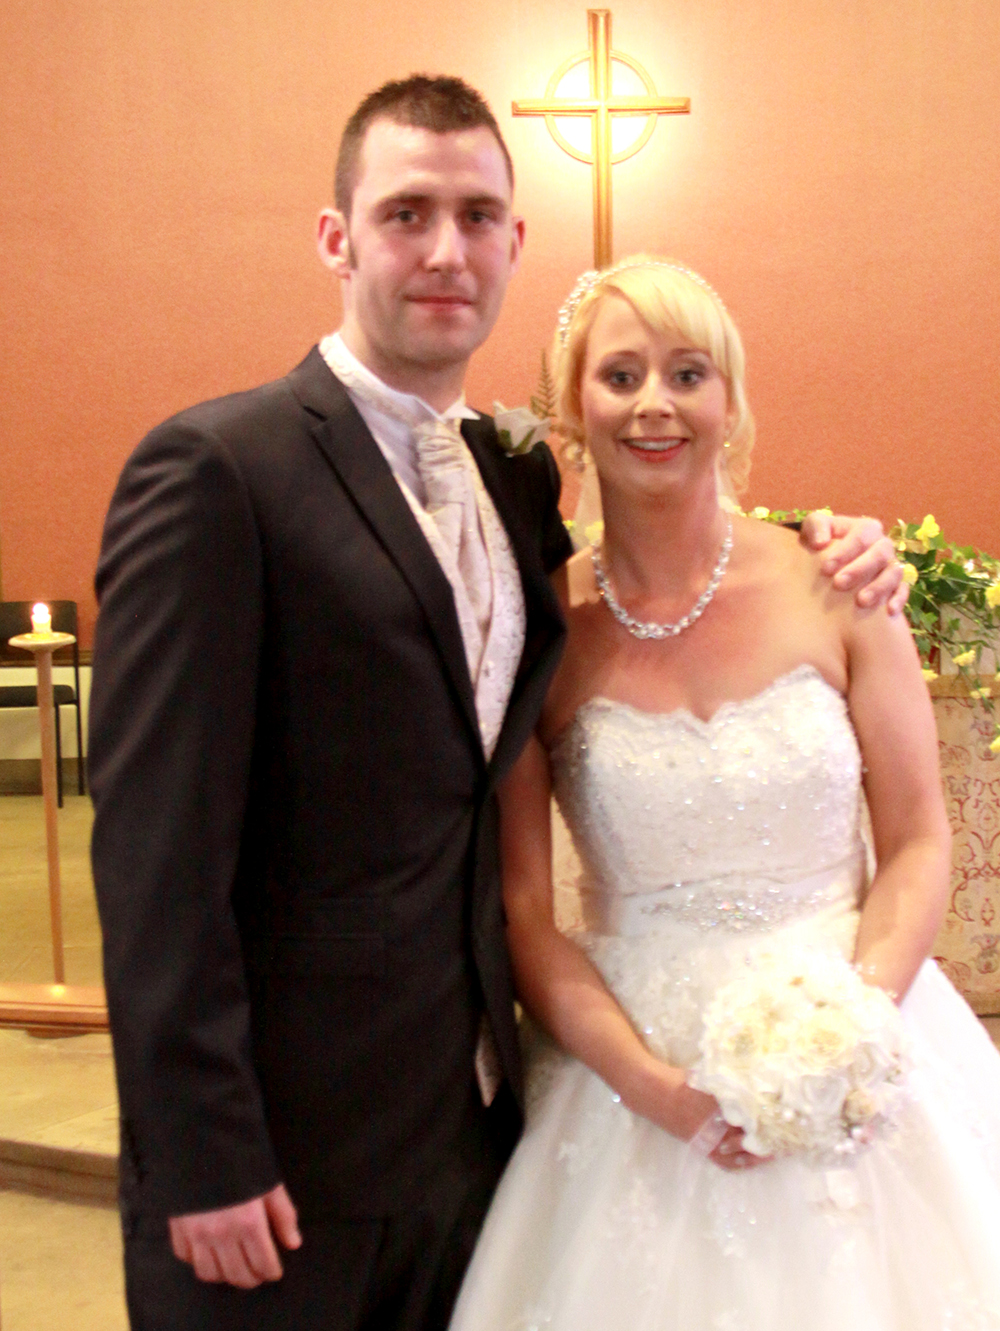 Married at St. Clare's